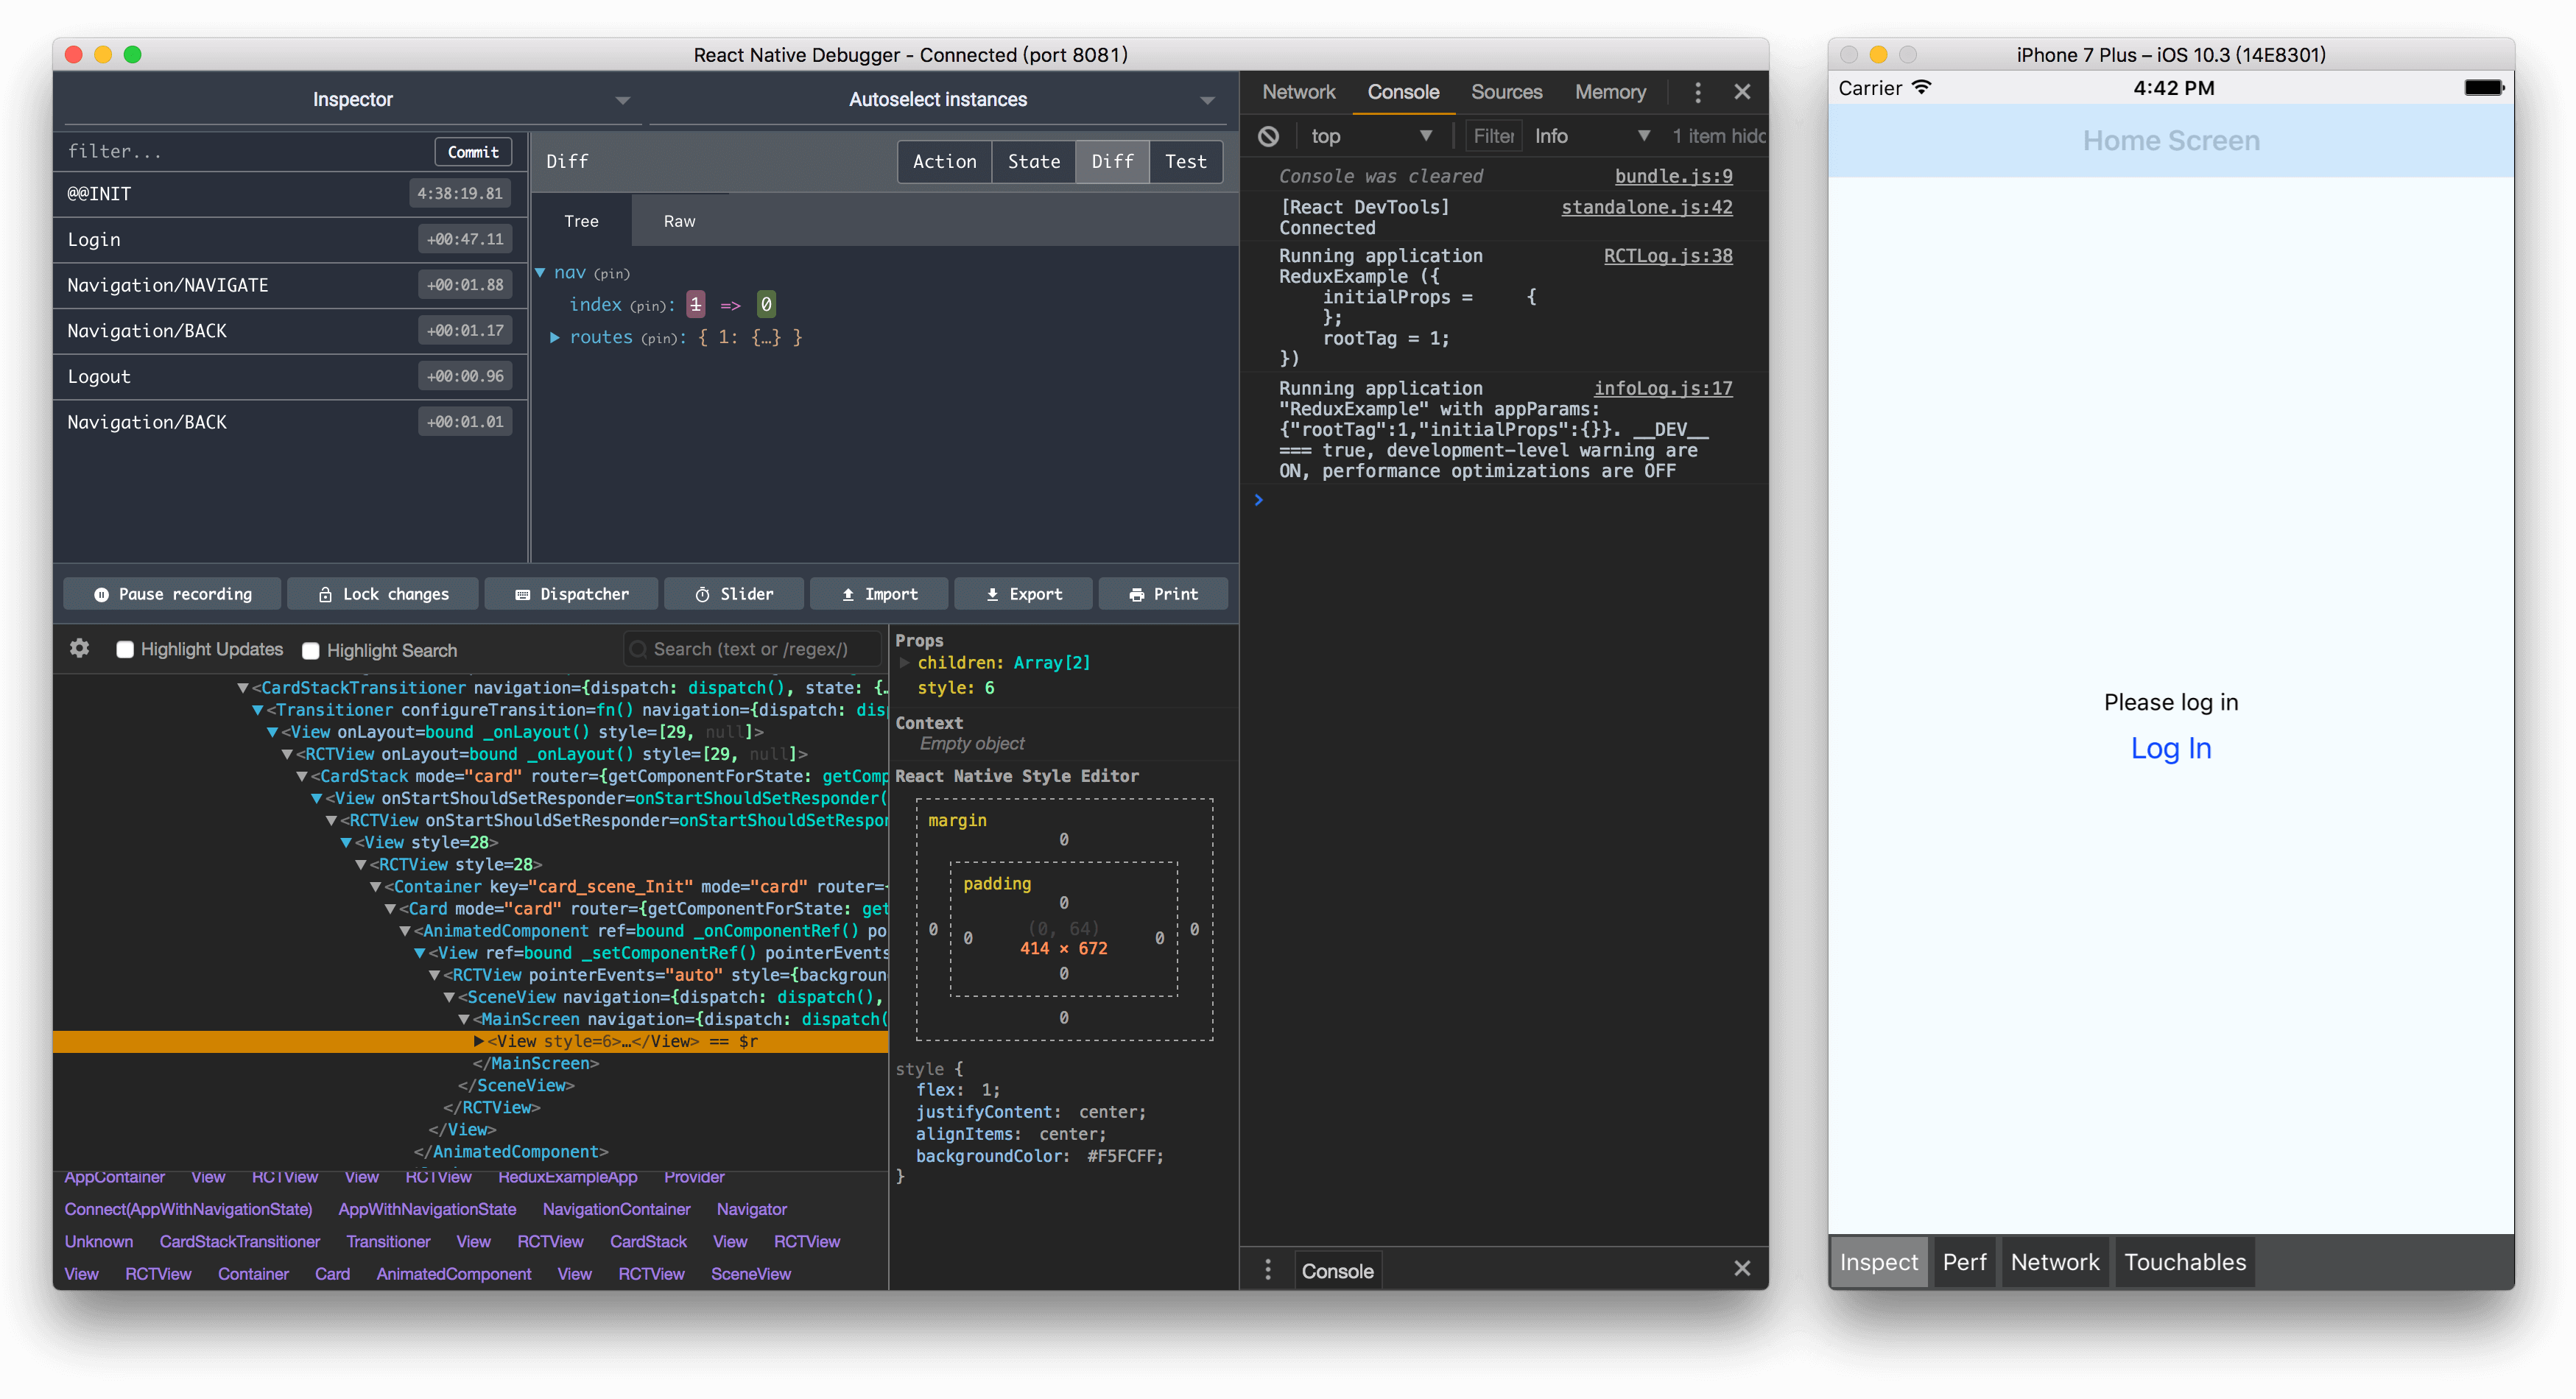 React Native Debugger 界面